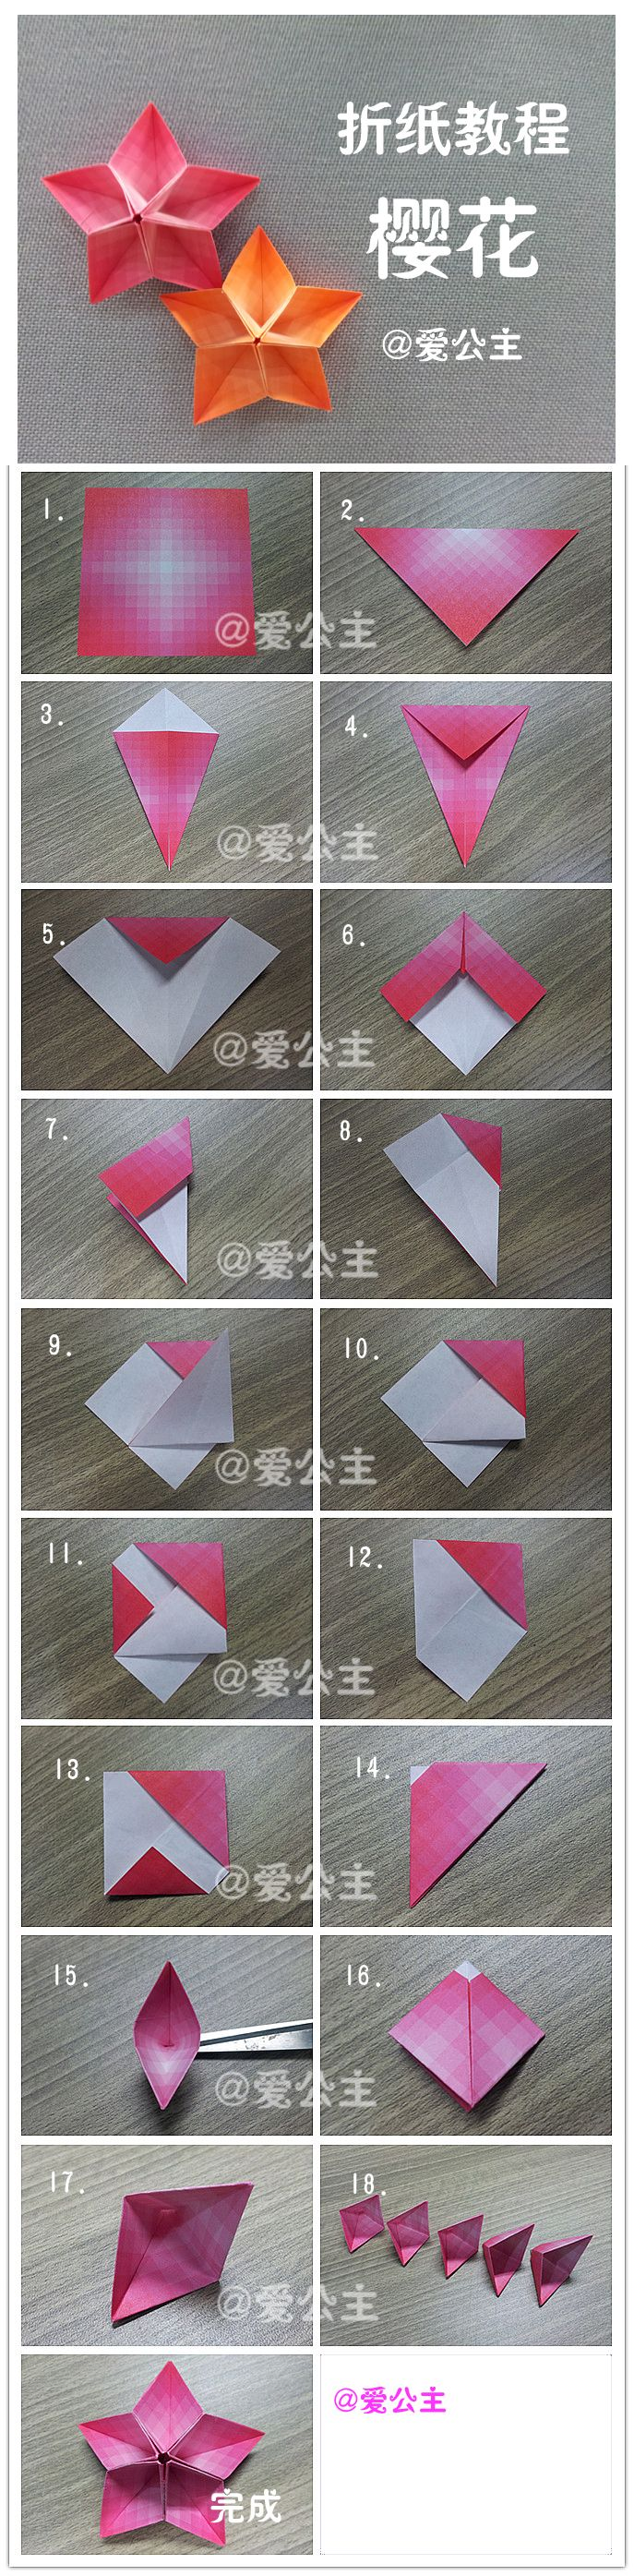 122 best origami diy images on pinterest paper crafting paper origami diy flower izmirmasajfo Images